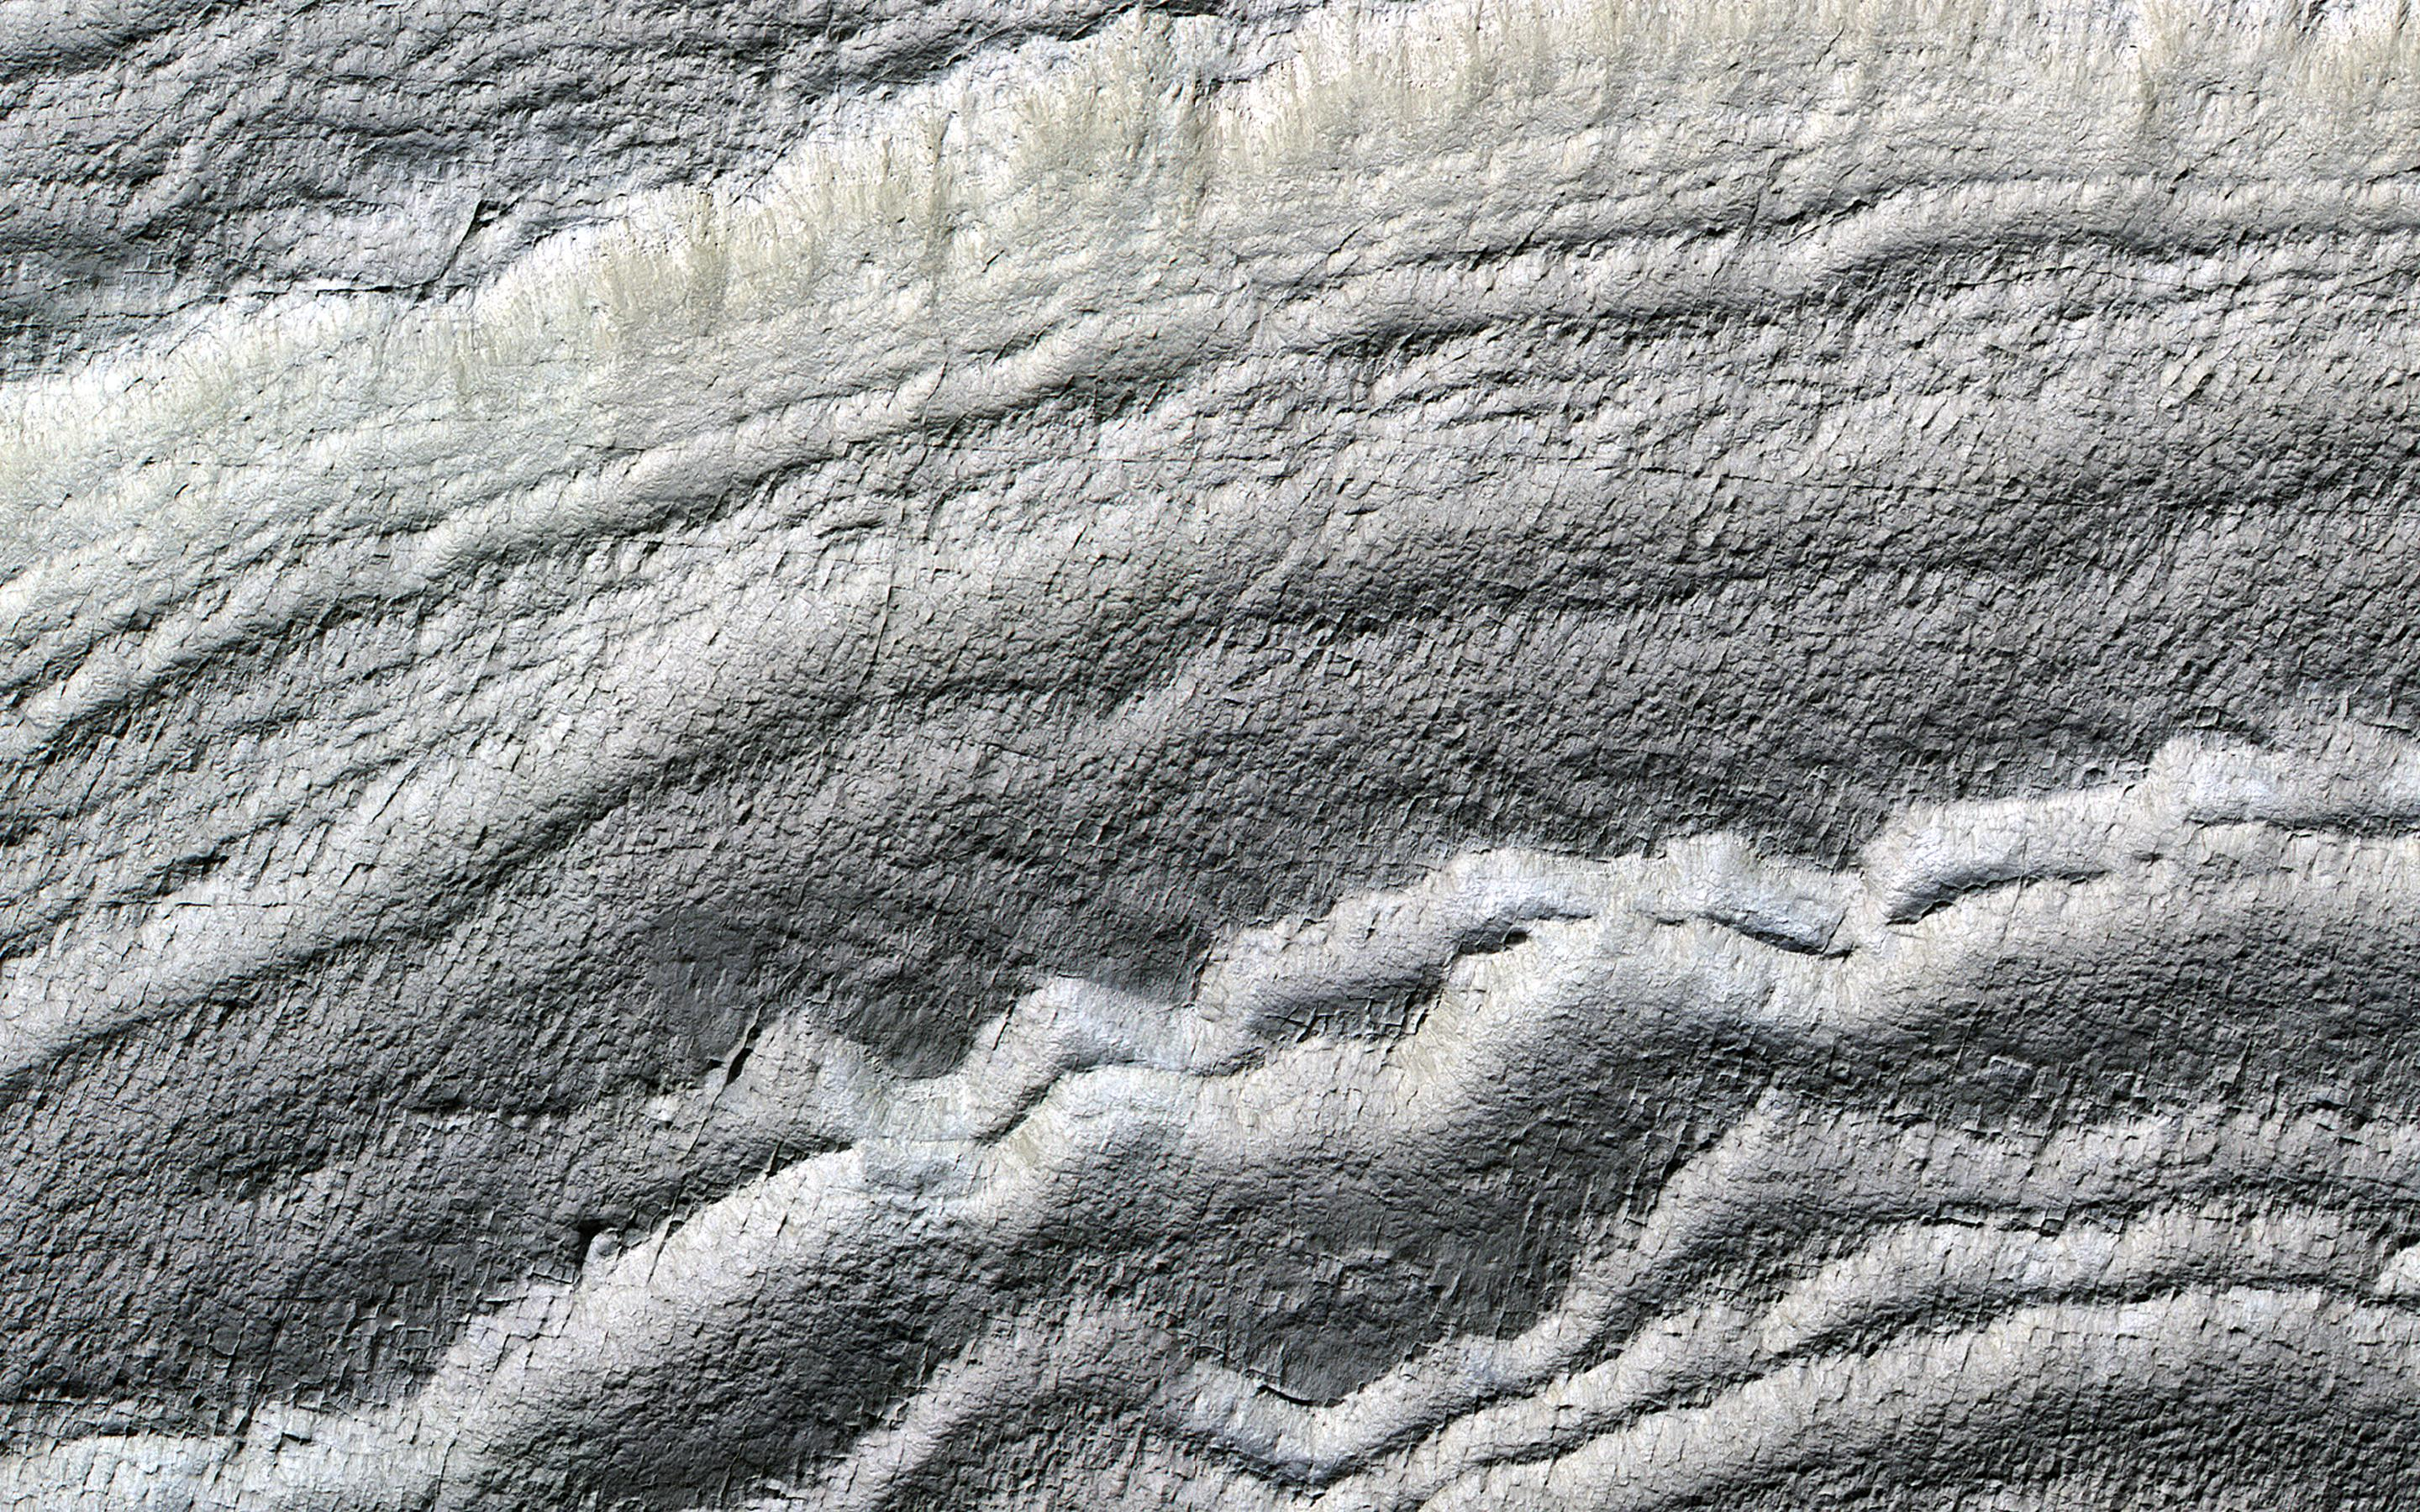 This image acquired on January 21, 2019 by NASAs Mars Reconnaissance Orbiter, shows the south polar layered deposits are well illuminated to accentuate the topography.